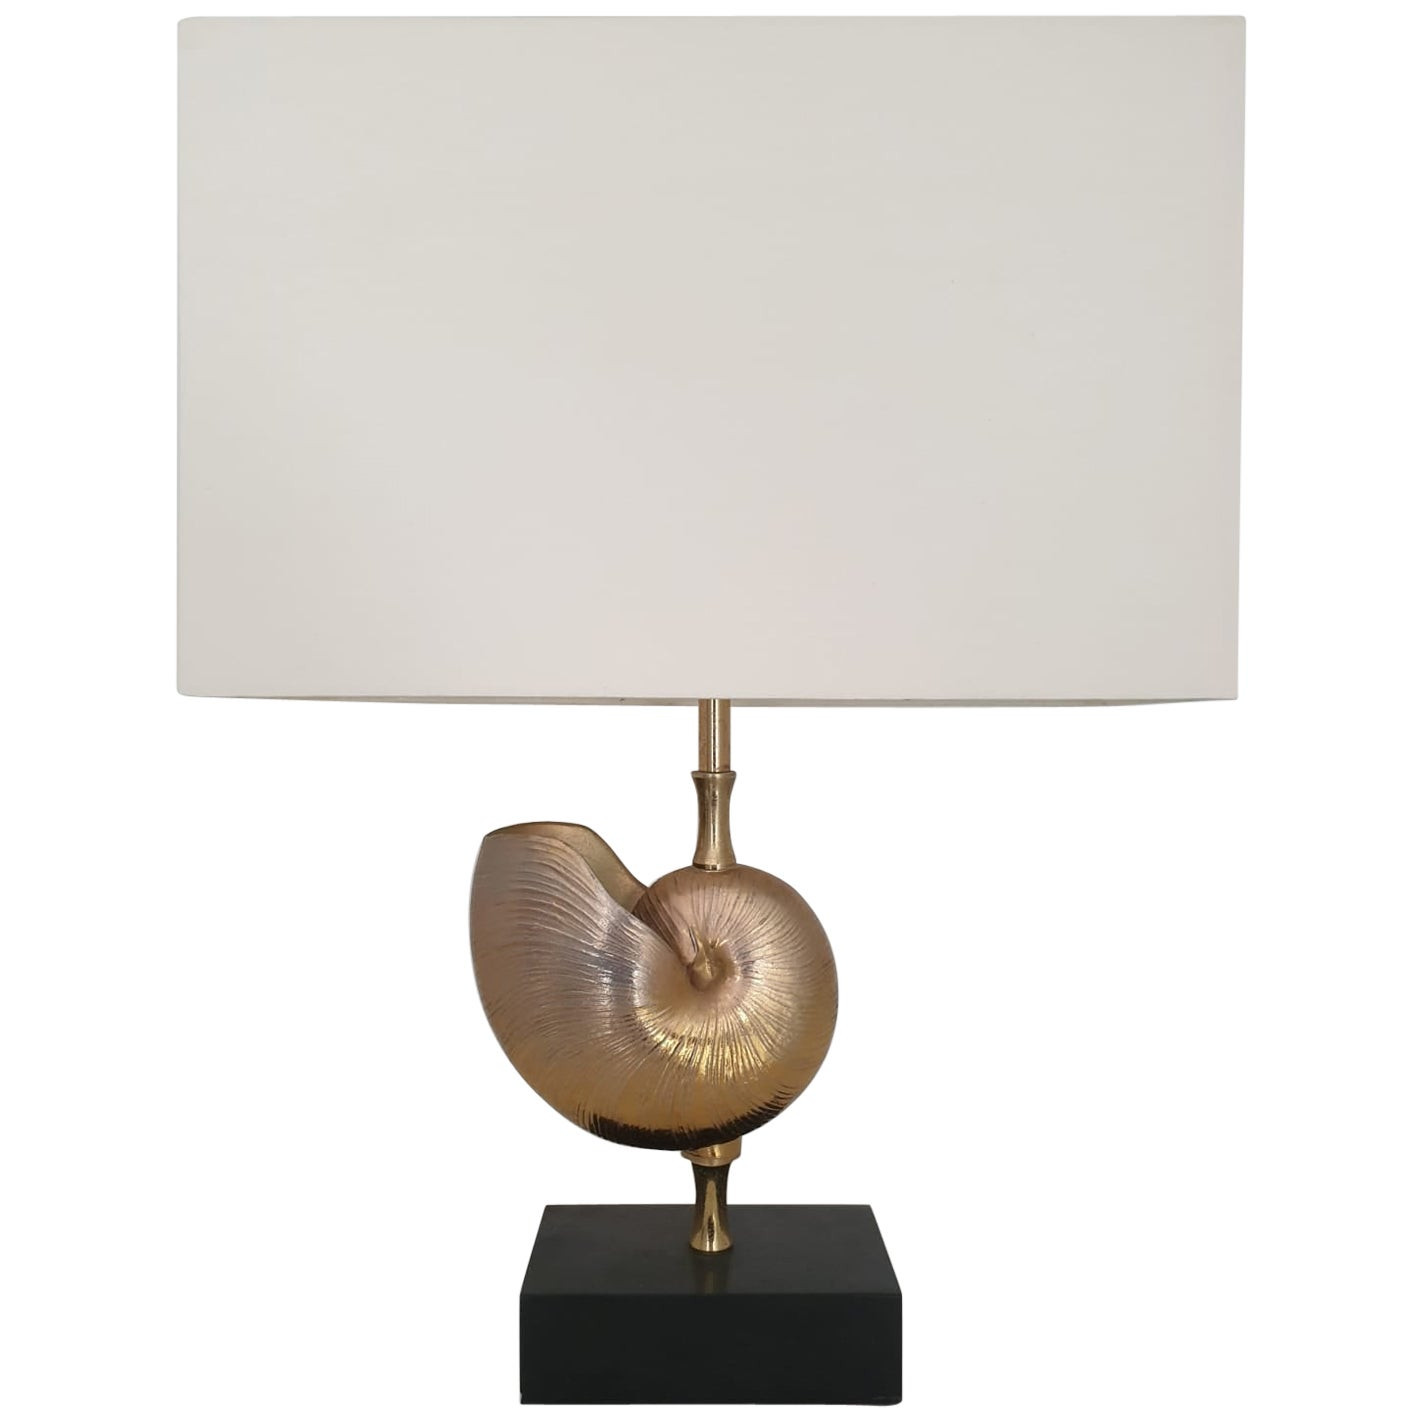 Mid-Century Modern Bronze Table Lamp Sitting on Marble Base